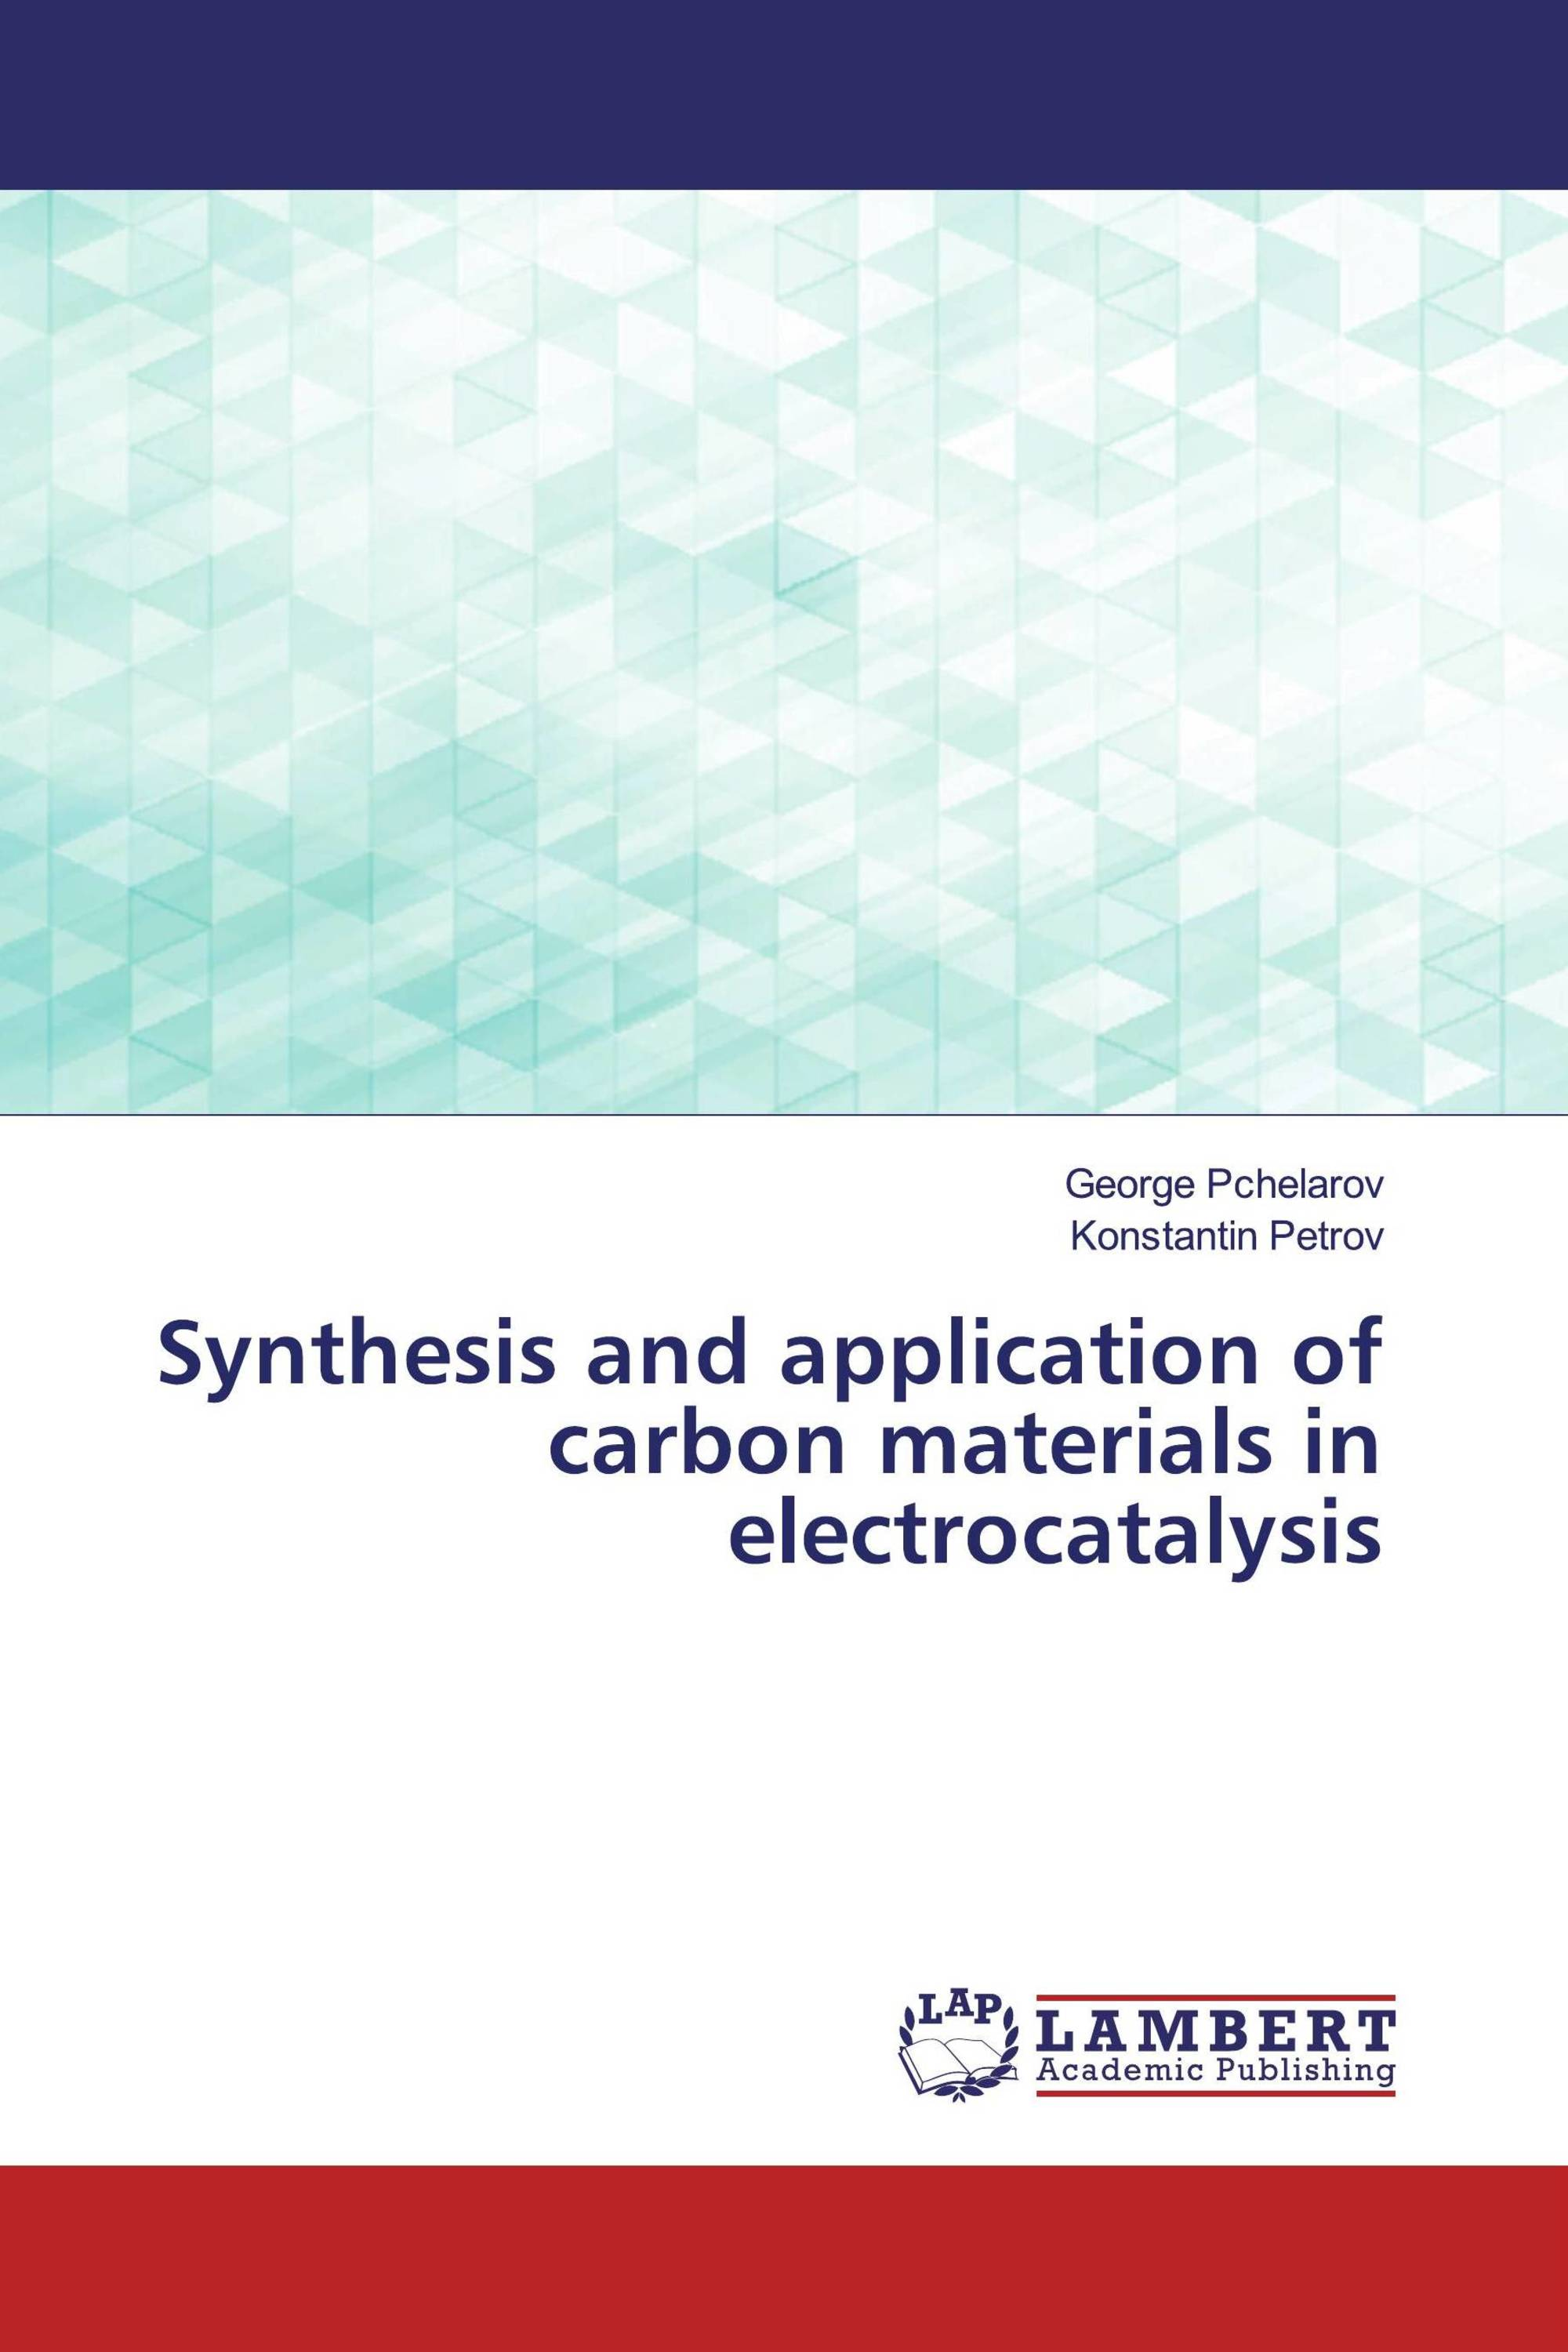 Synthesis and application of carbon materials in electrocatalysis